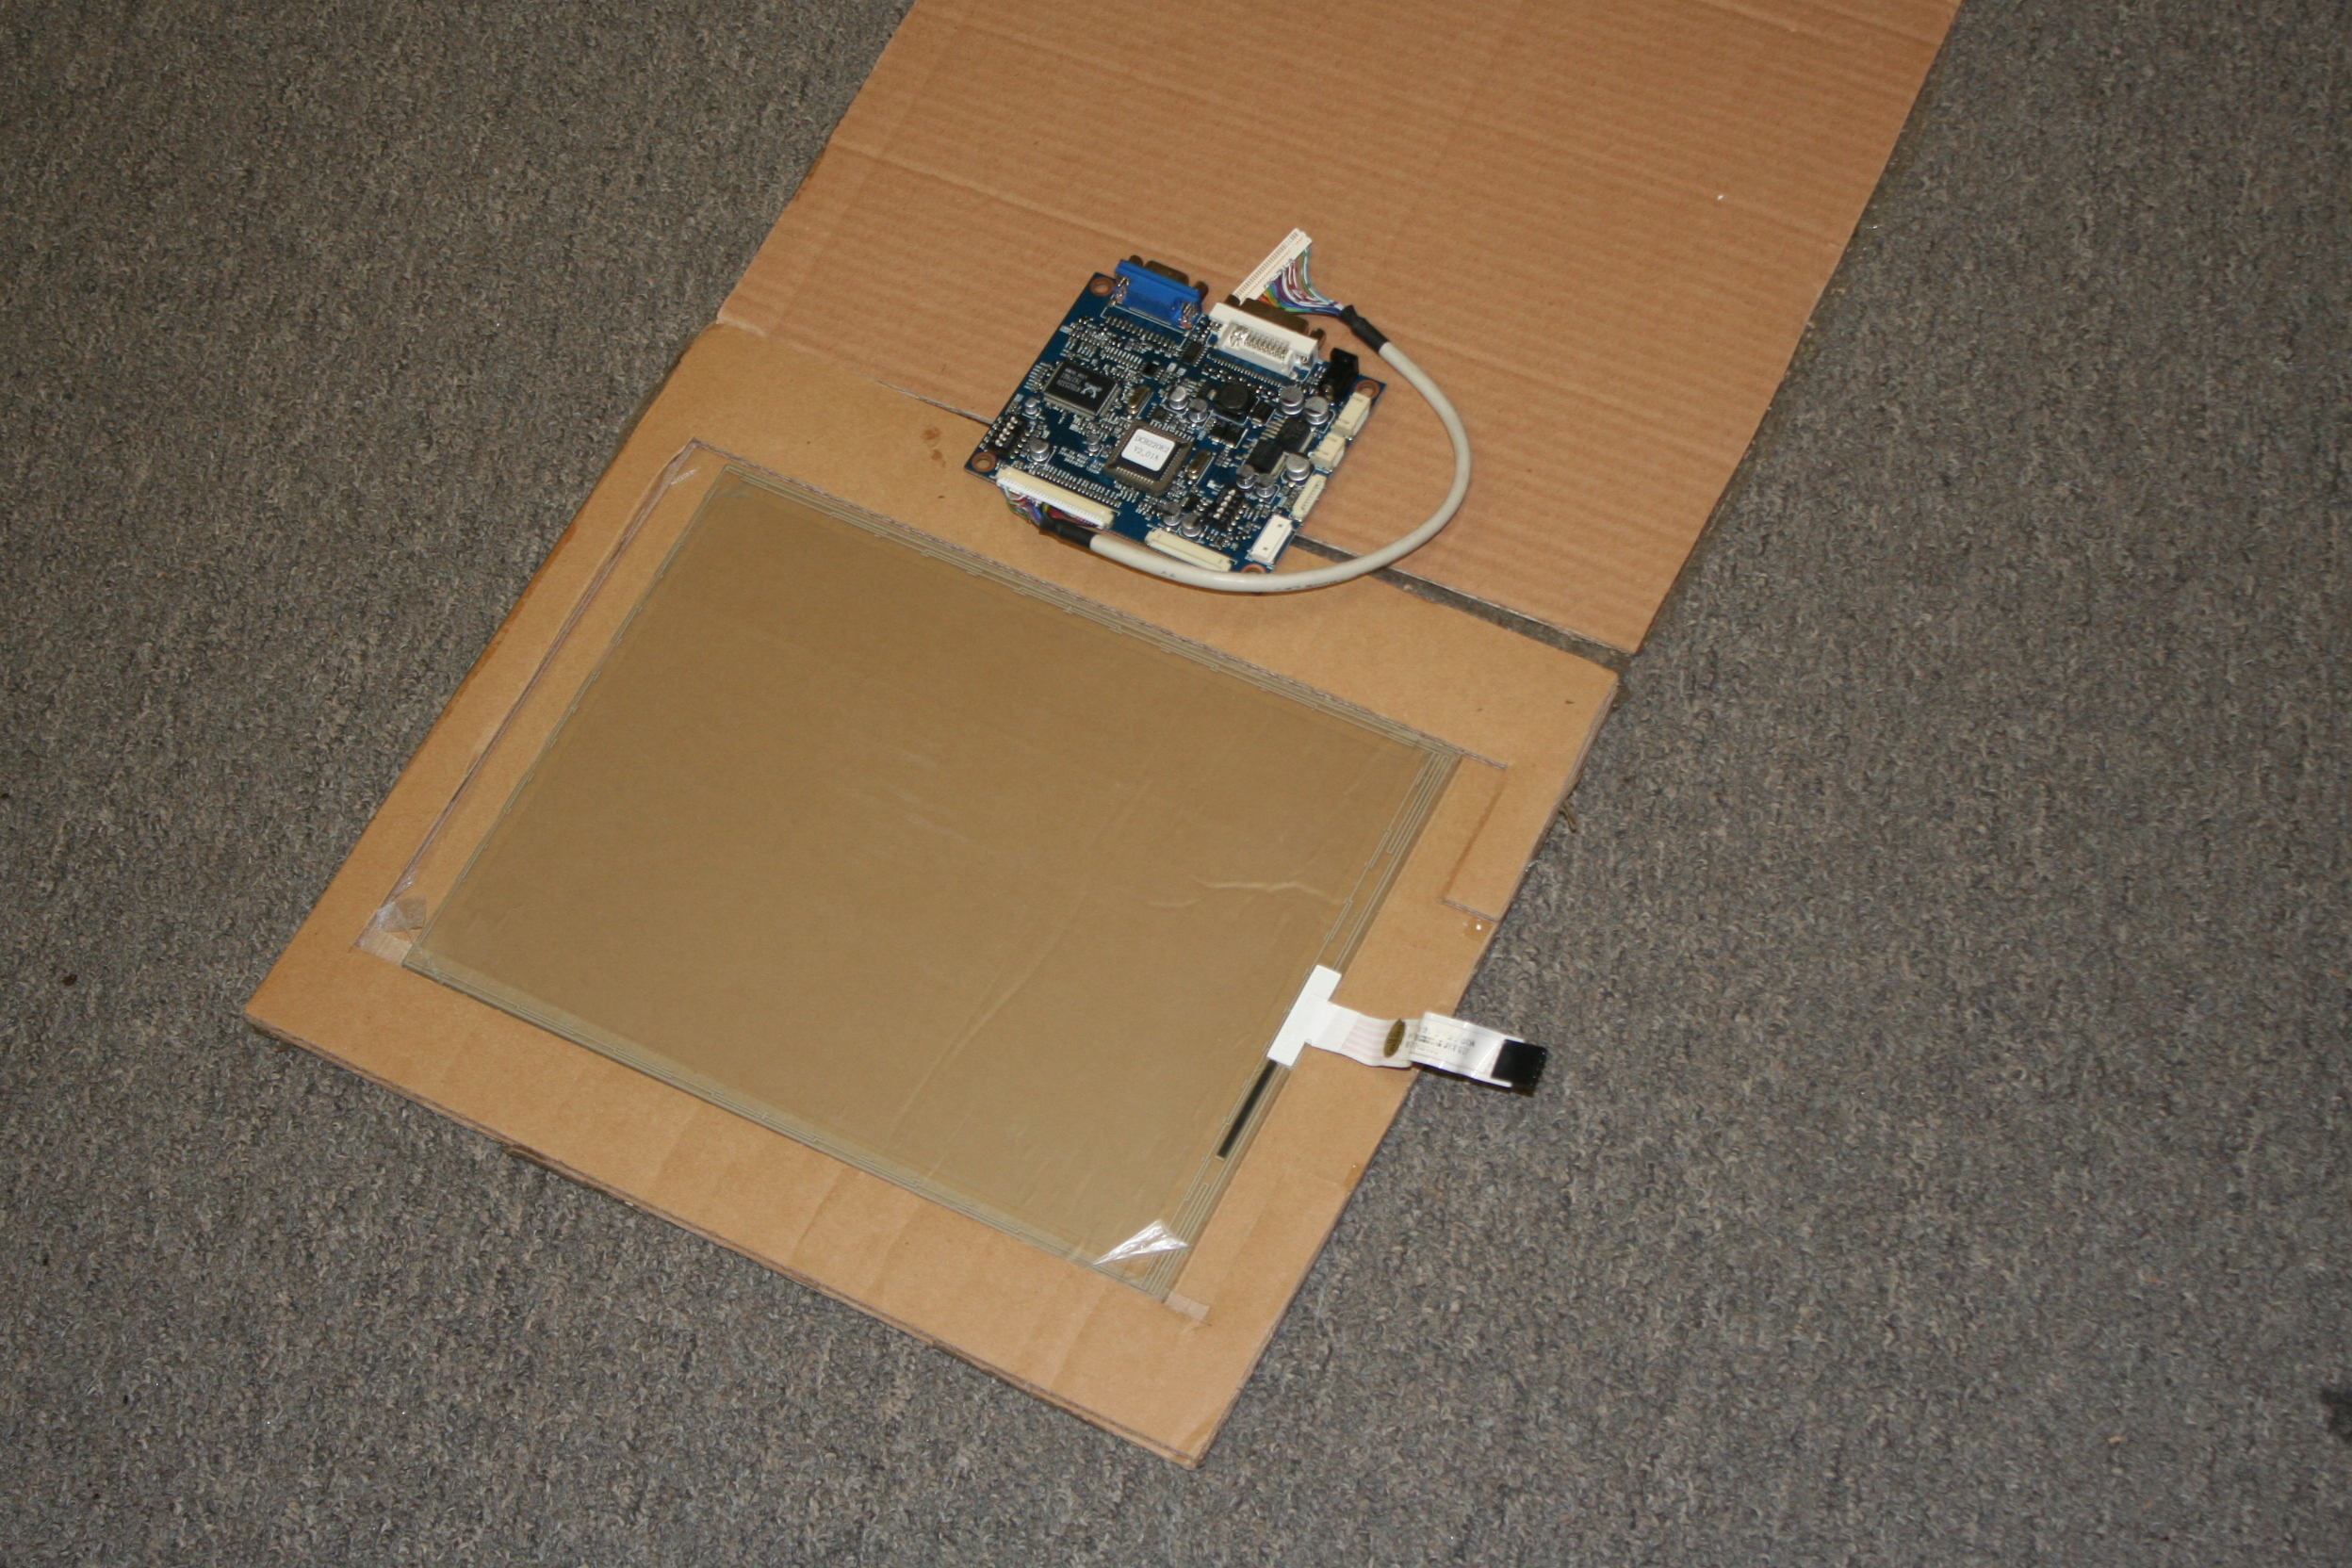 Picture of development vtouch kits.